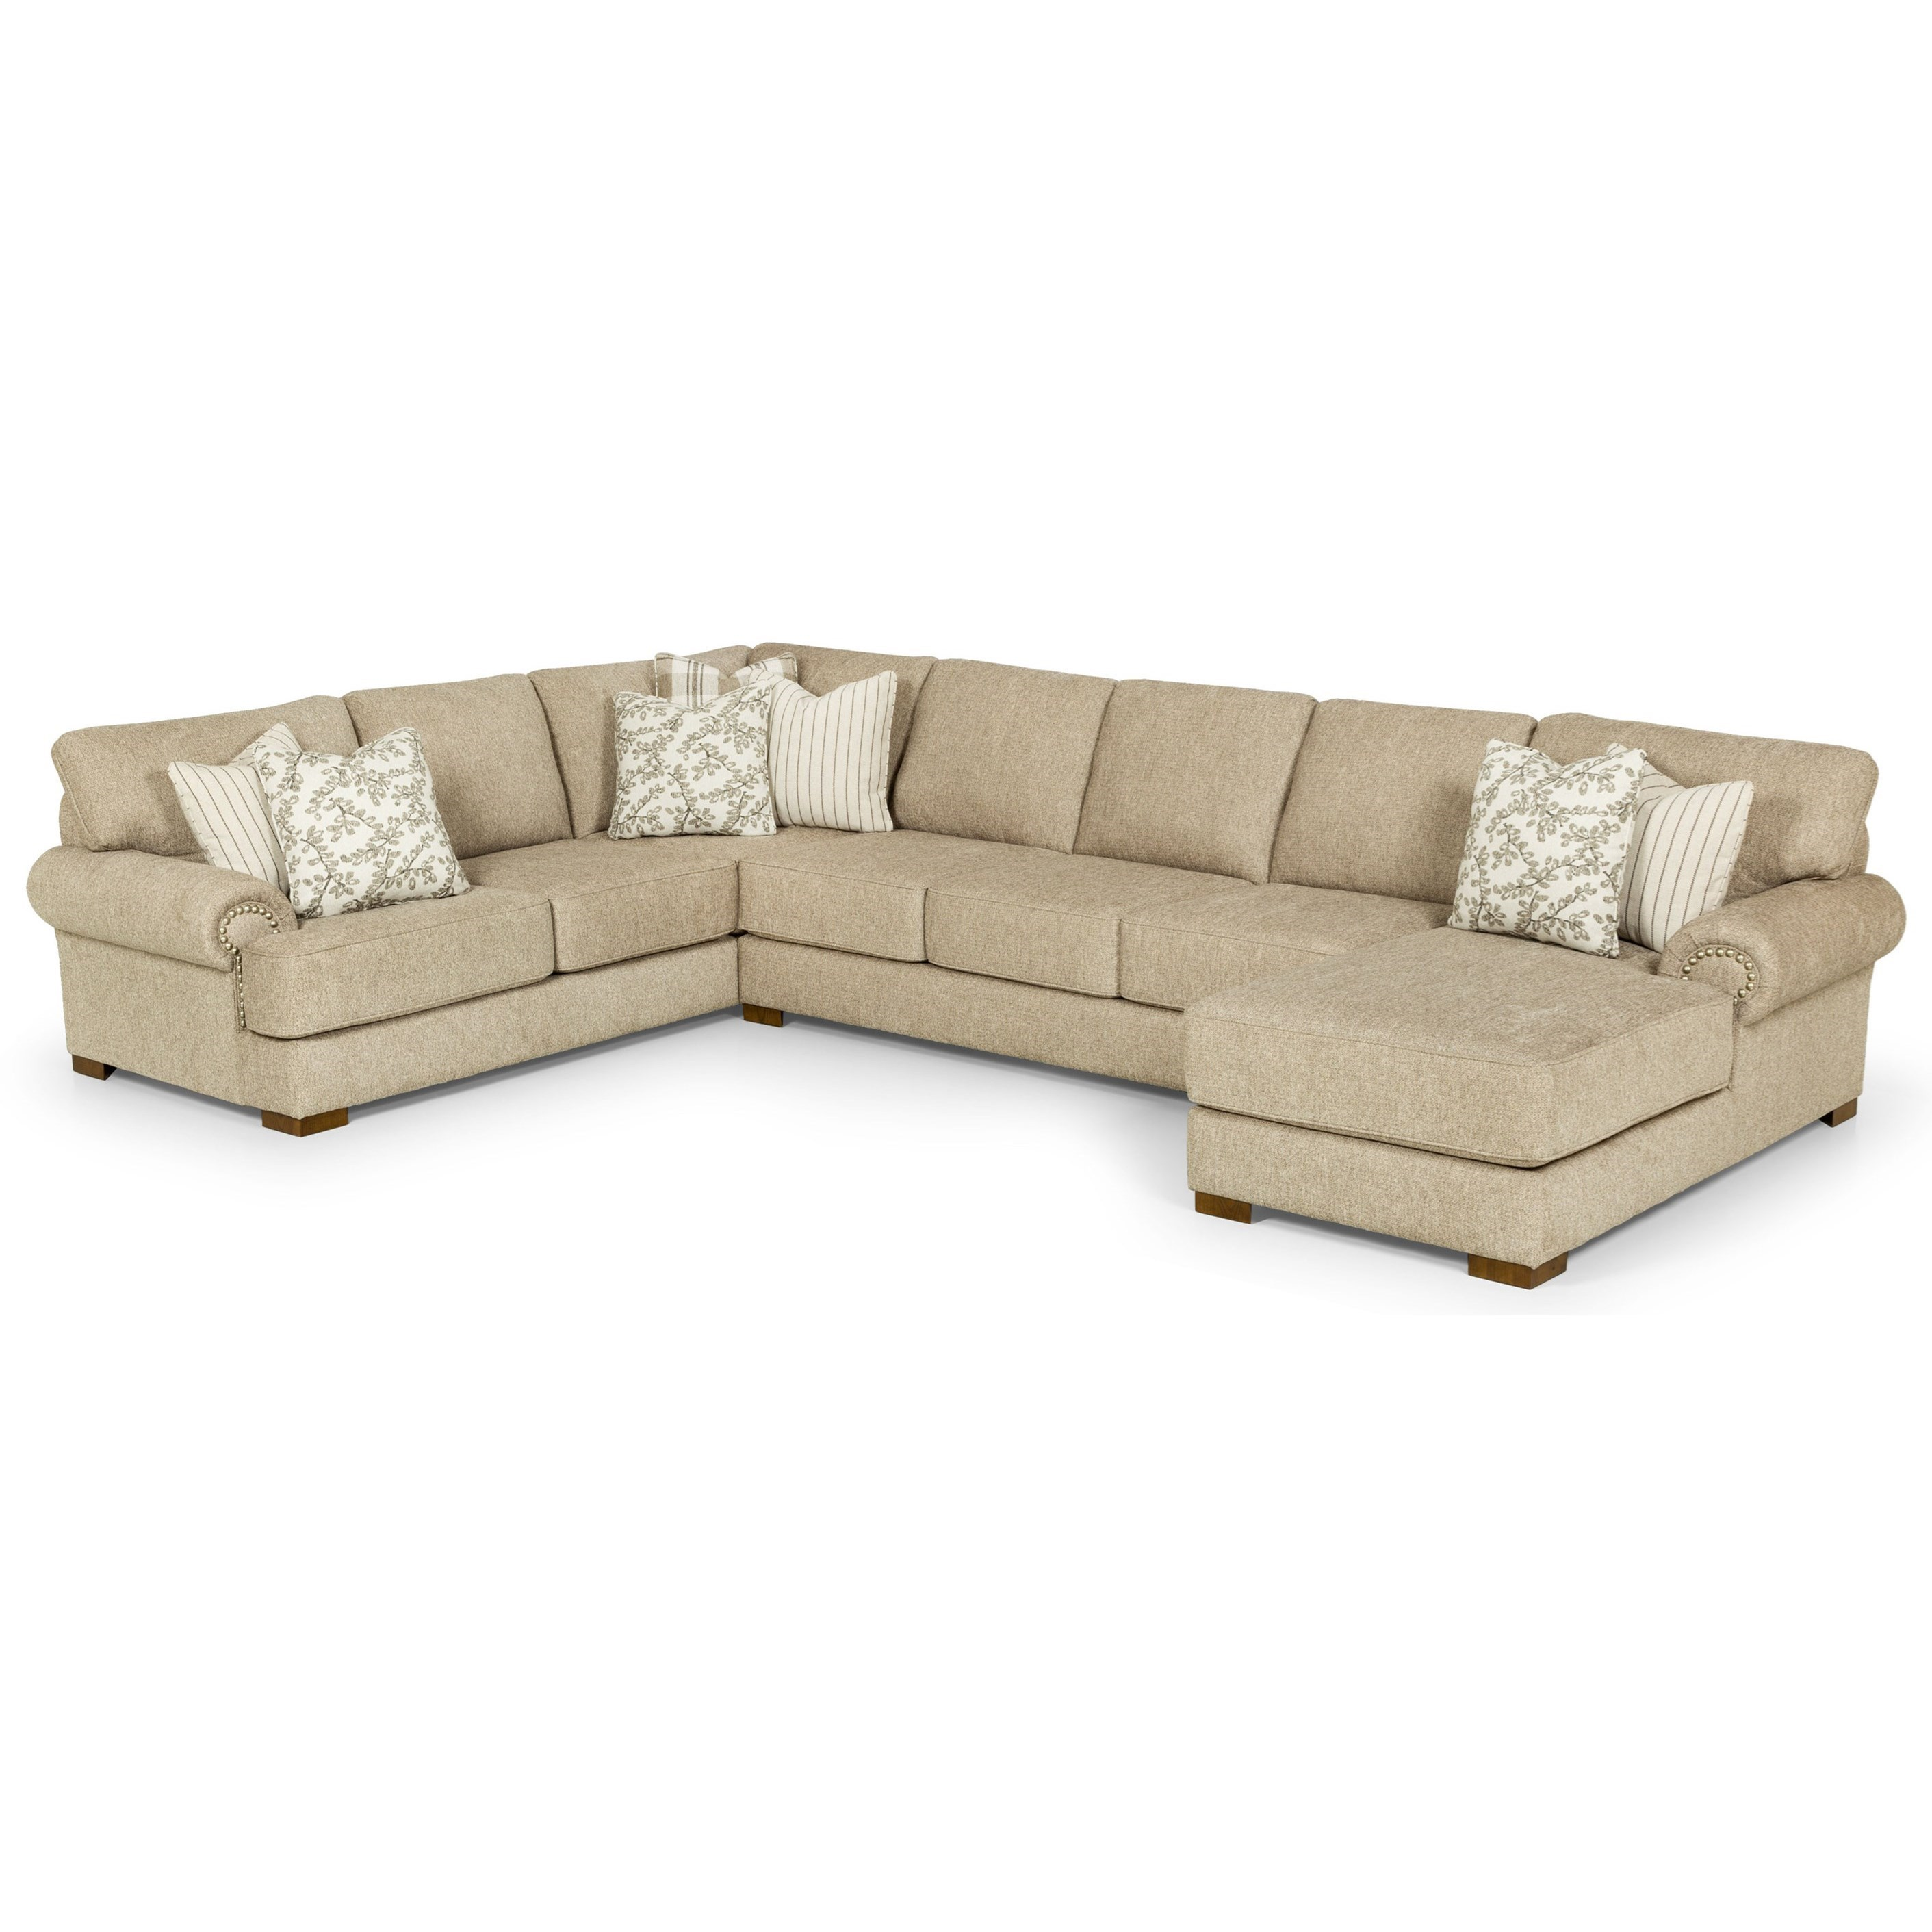 6 seat sectional sofa with raf chaise